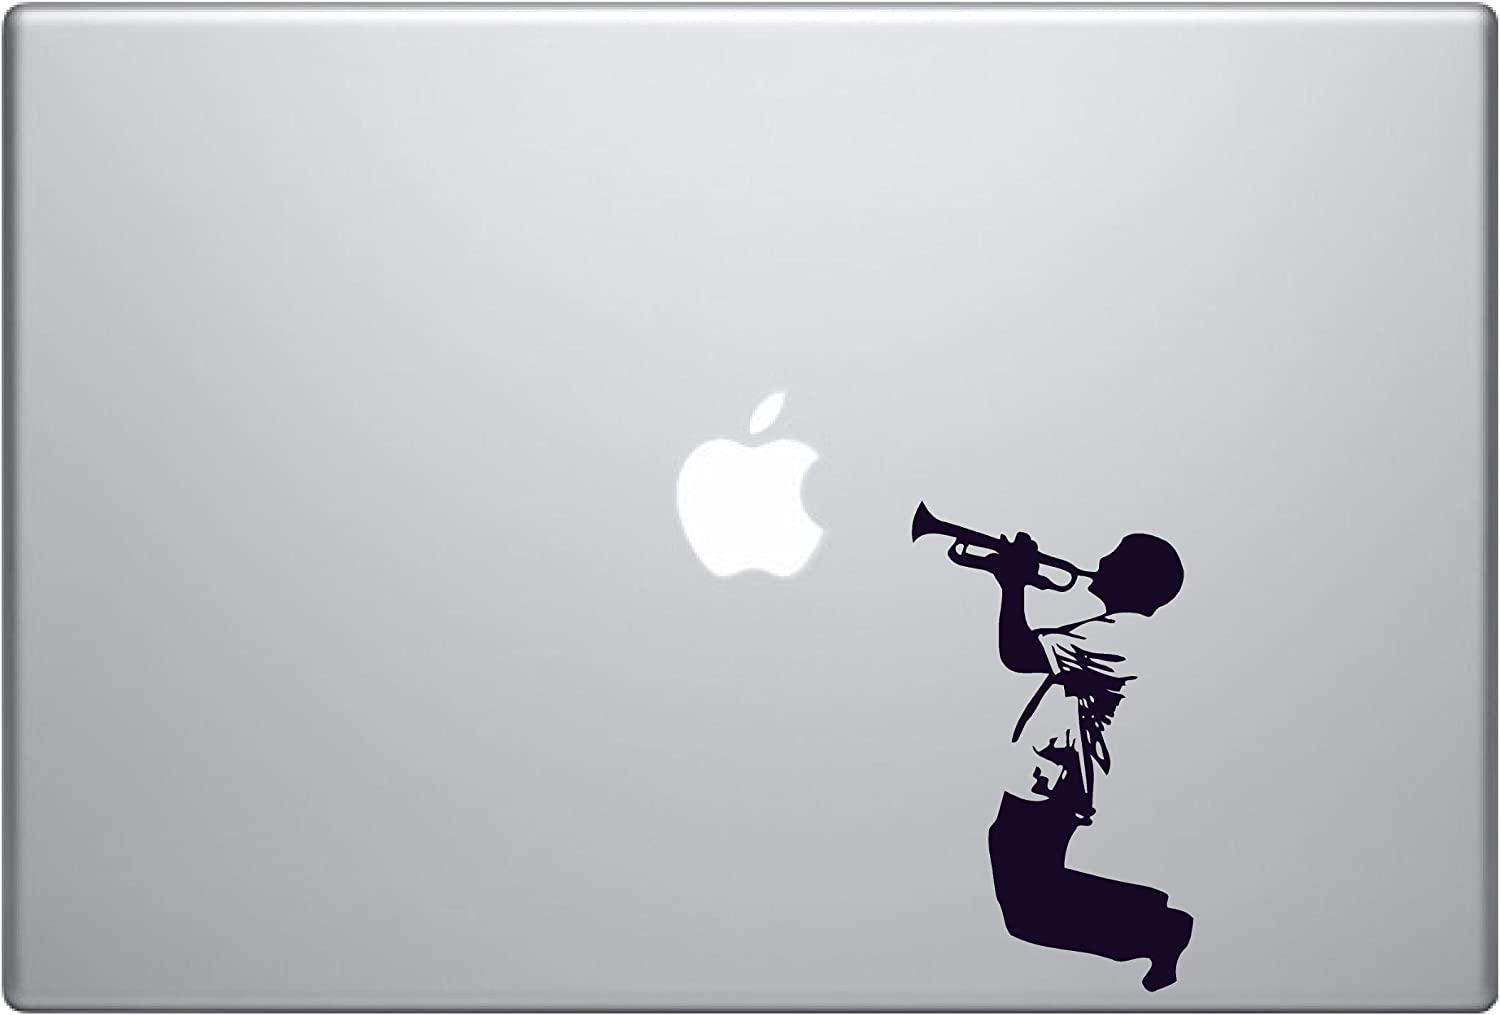 Passion Trumpet Player cheap Silhouette Macbook Iphone Free shipping A Symbol Keypad